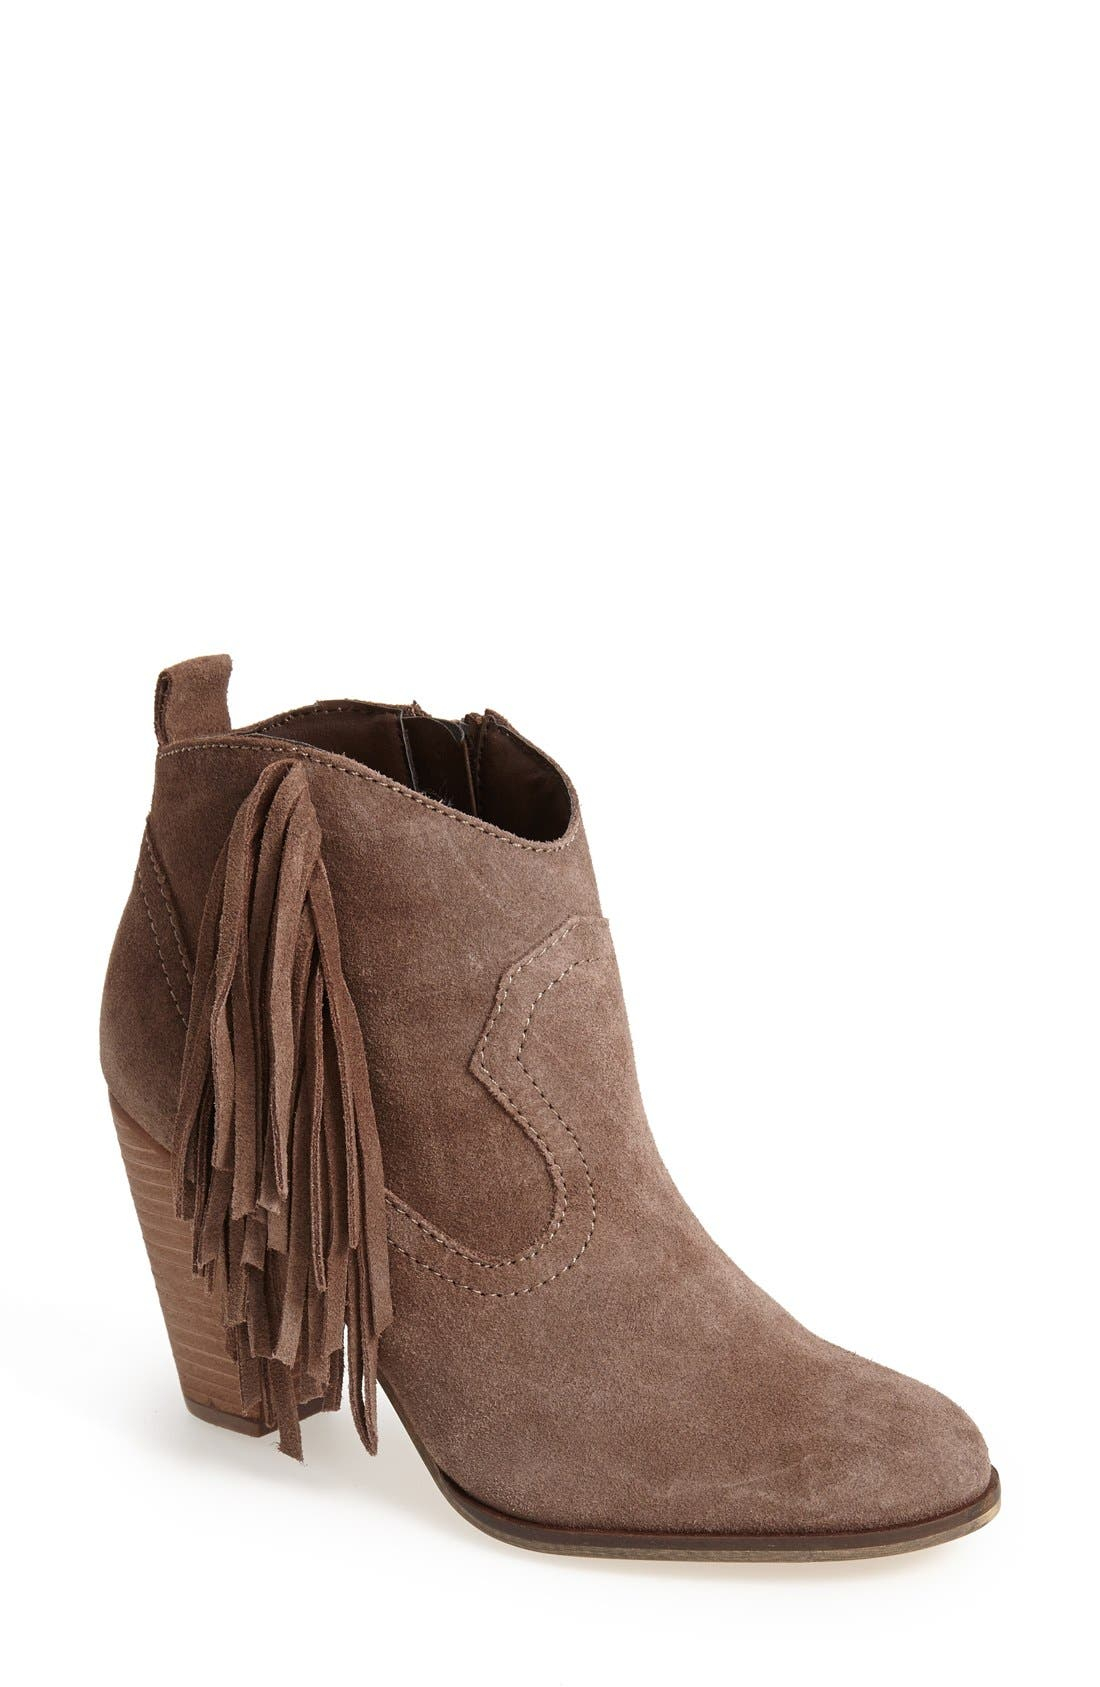 Alternate Image 1 Selected - Steve Madden 'Ponncho' Suede Bootie (Women)